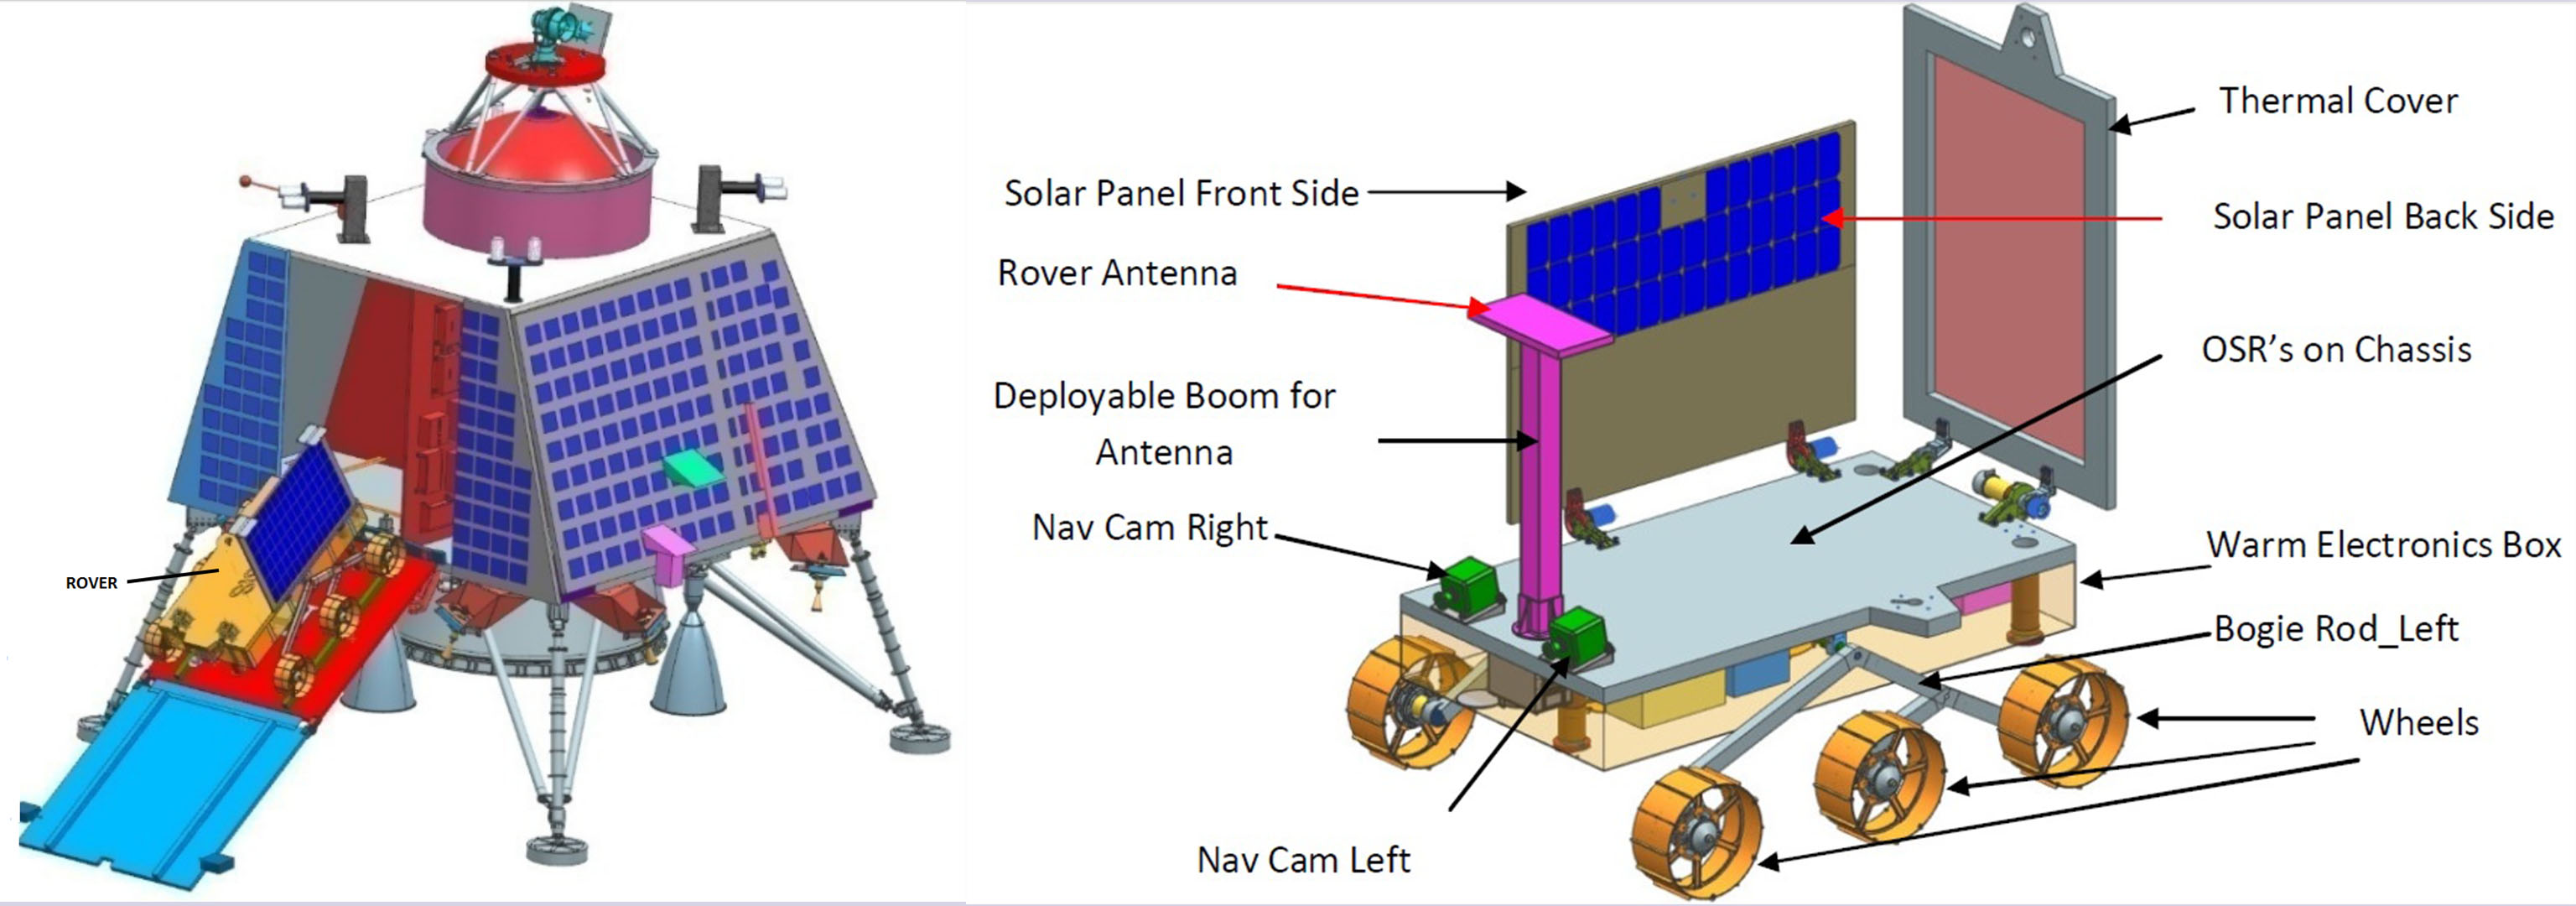 What Are The Top Upcoming Projects From Isro Rover Fuel Pressure Diagram Of